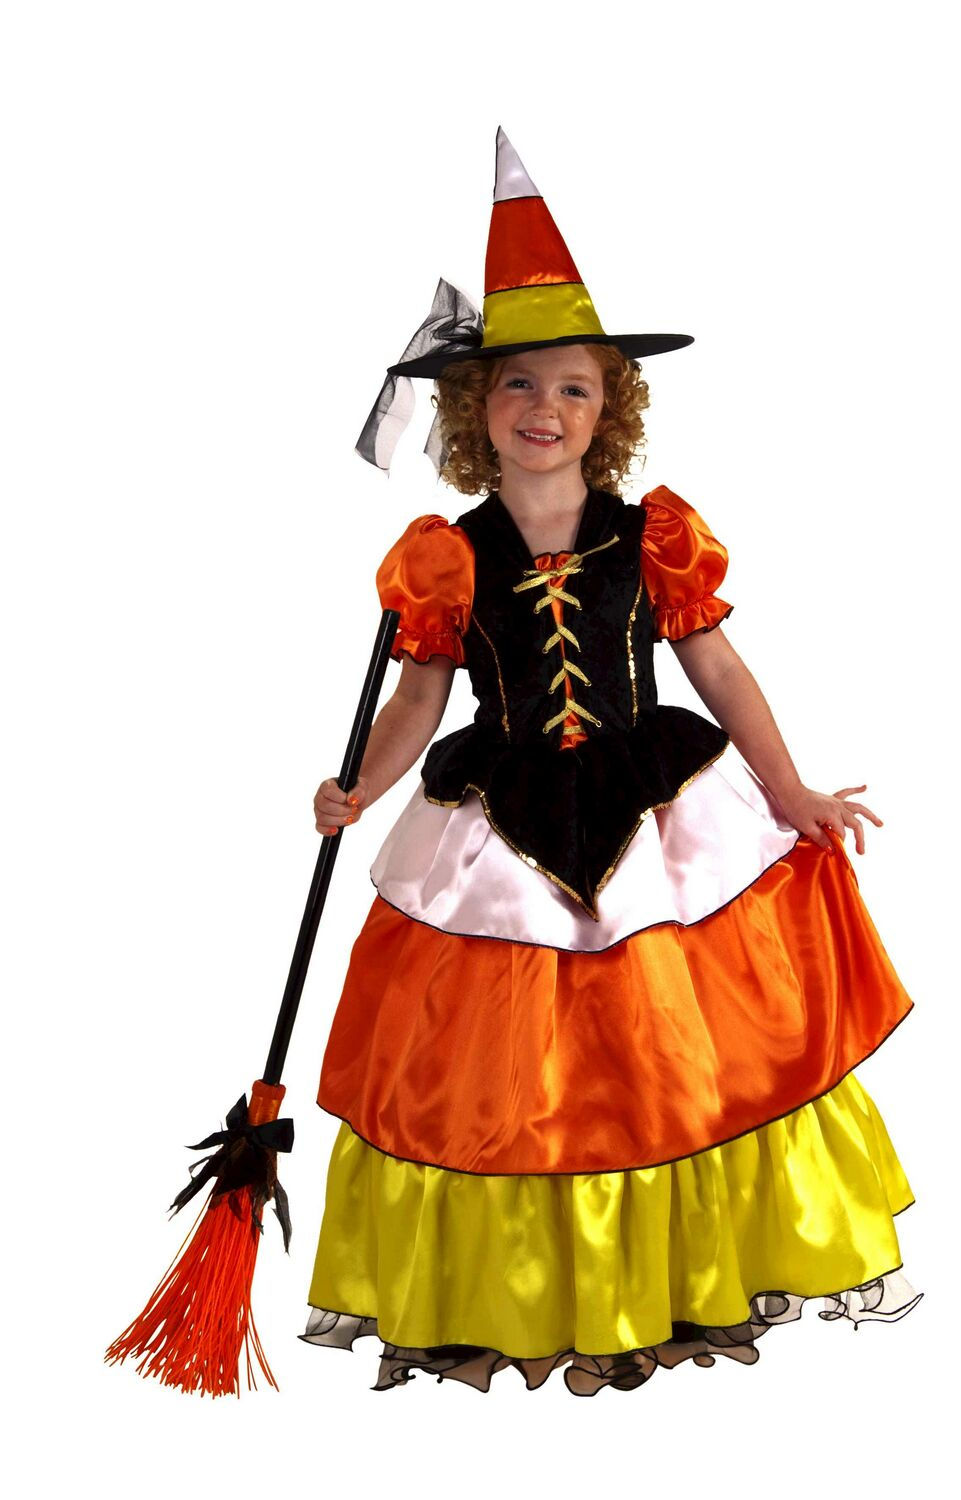 Candy Corn Costume http://www.buypartycostumes.com/candy-corn-witch-costume.html